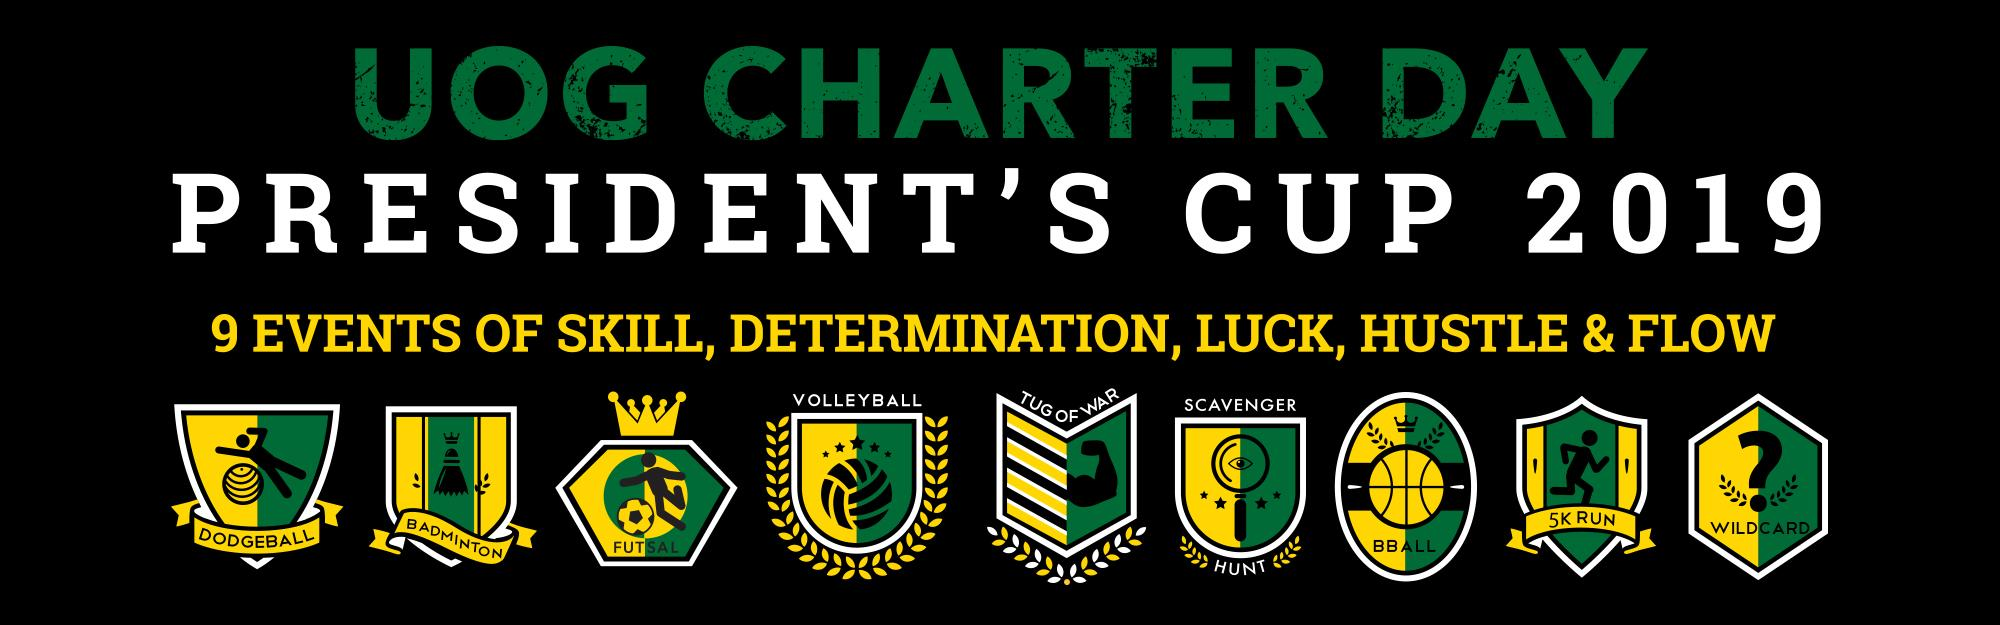 UOG Charter Day President's Cup 2019